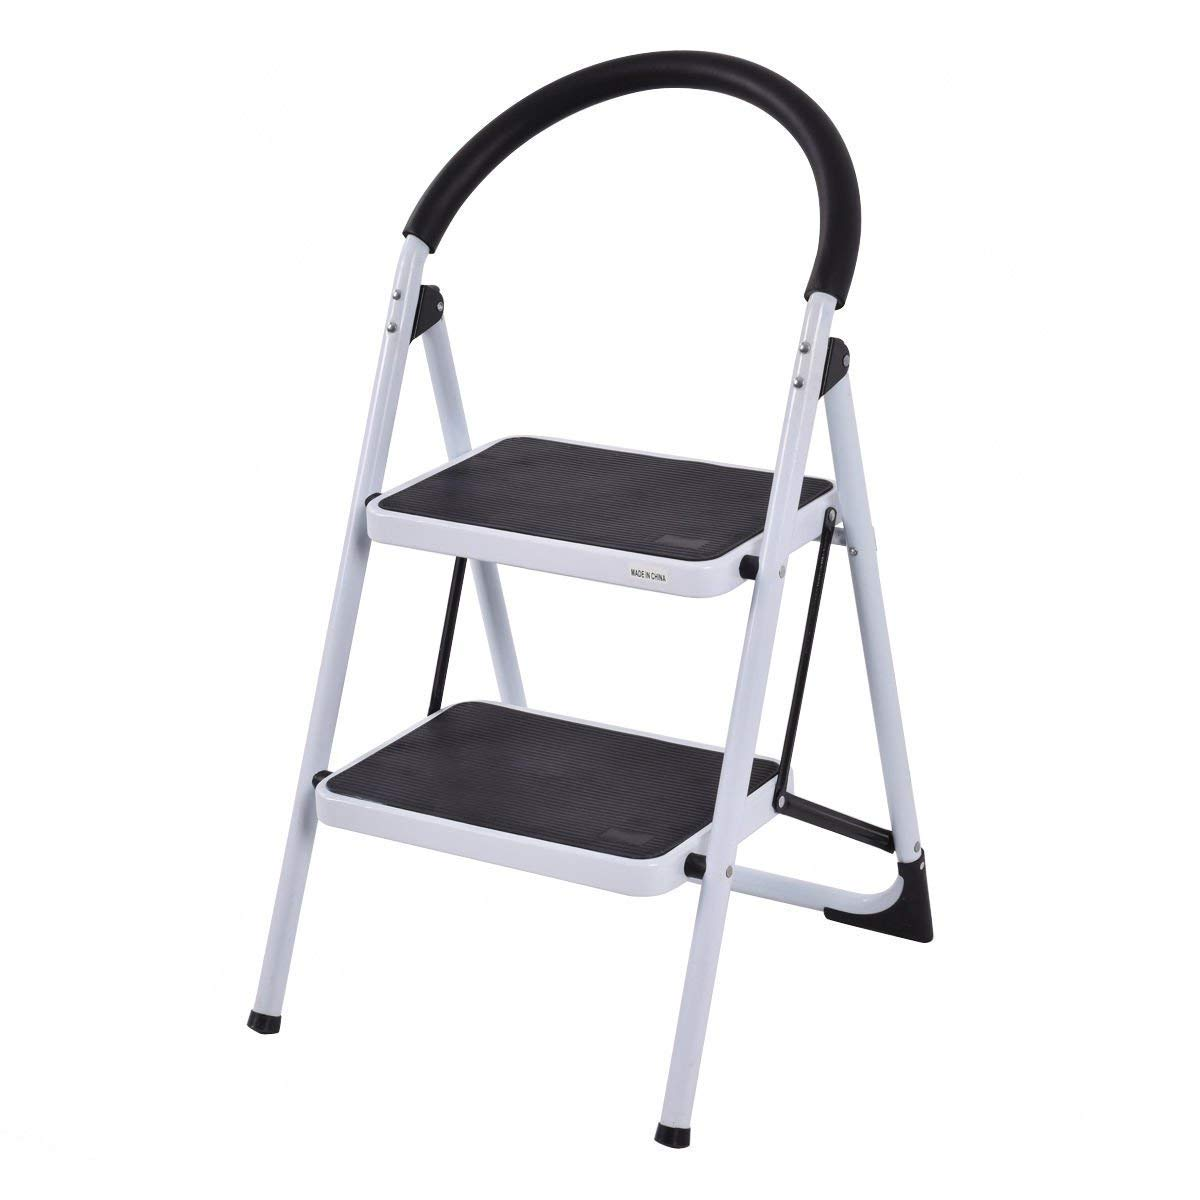 COSTWAY VD 32763TL 2 Step Ladder Black White